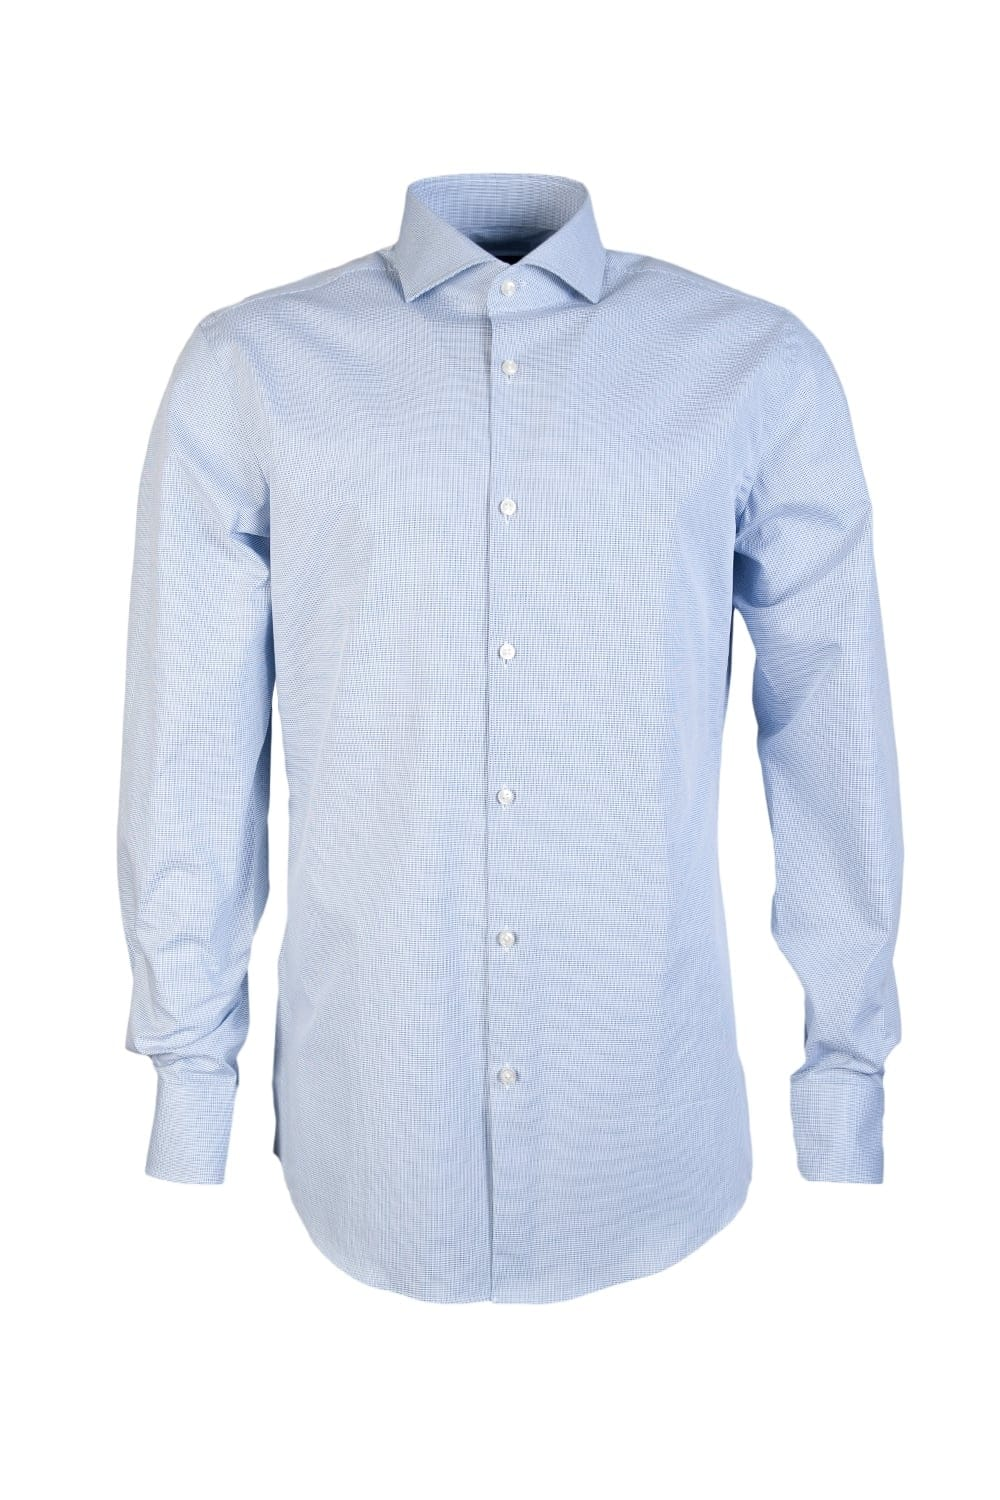 hugo boss shirt slim fit jason 50310518 clothing from